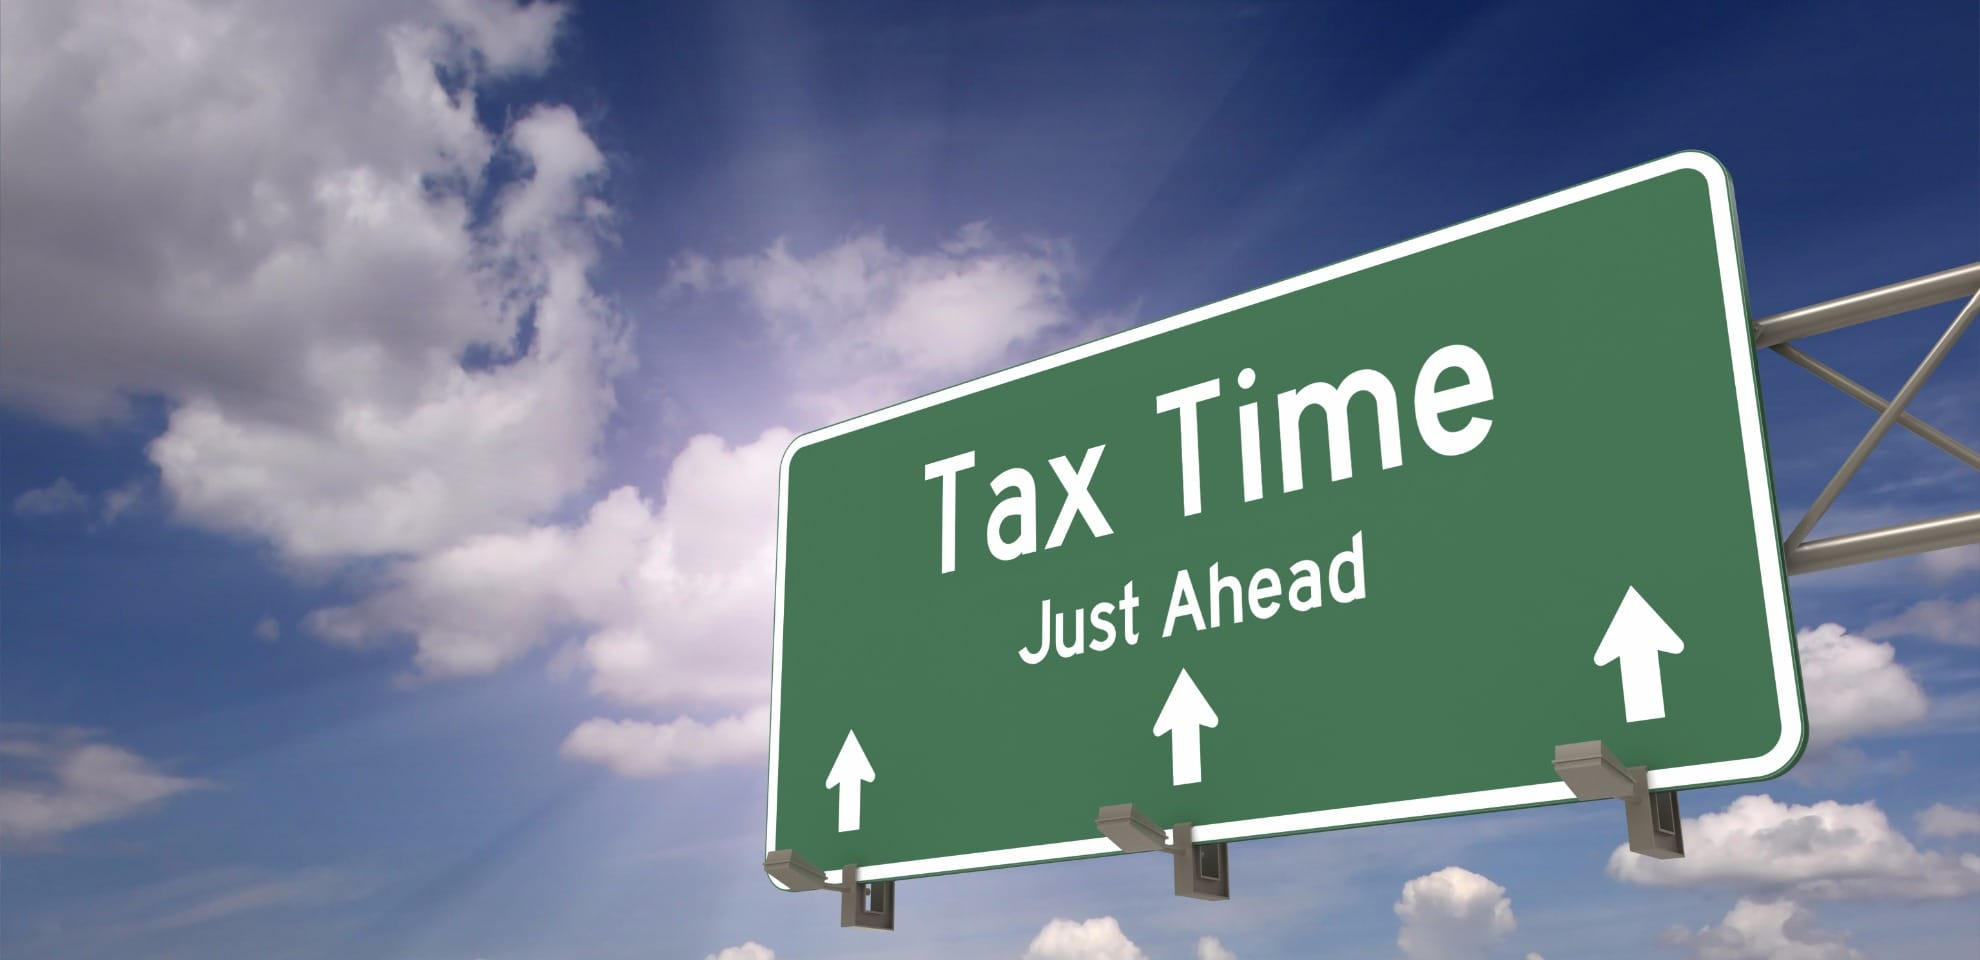 Time Poor Business Owners & the realities of Tax Time